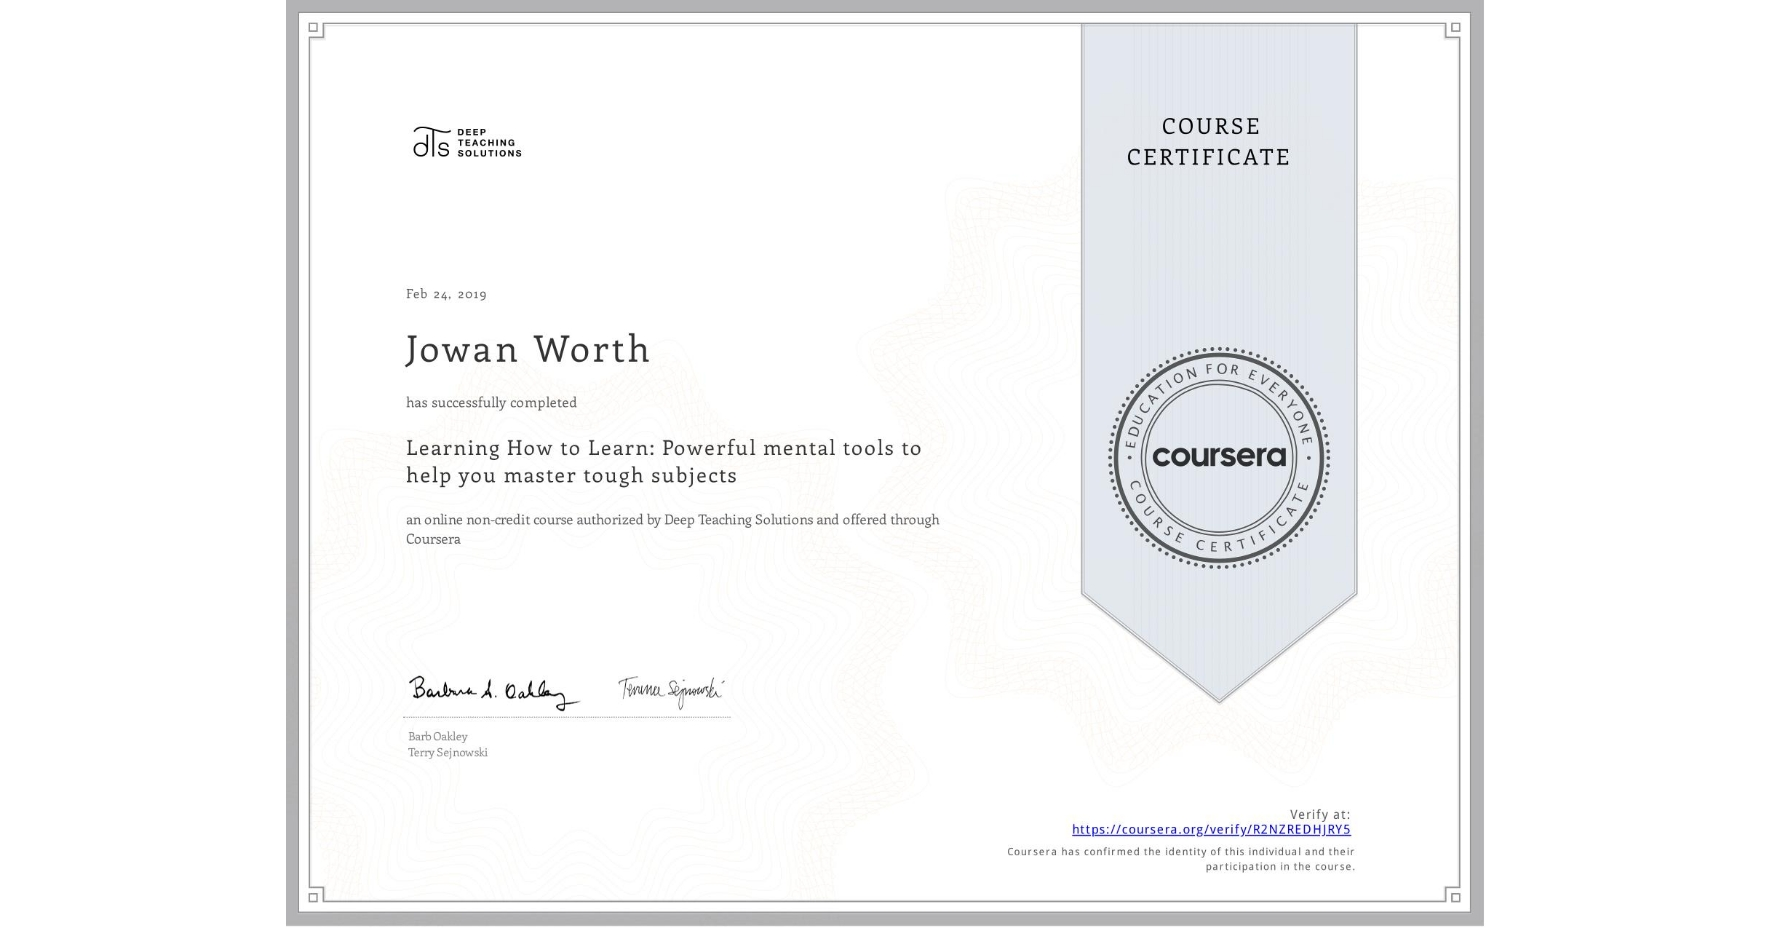 View certificate for Jowan Worth, Learning How to Learn: Powerful mental tools to help you master tough subjects, an online non-credit course authorized by McMaster University & University of California San Diego and offered through Coursera